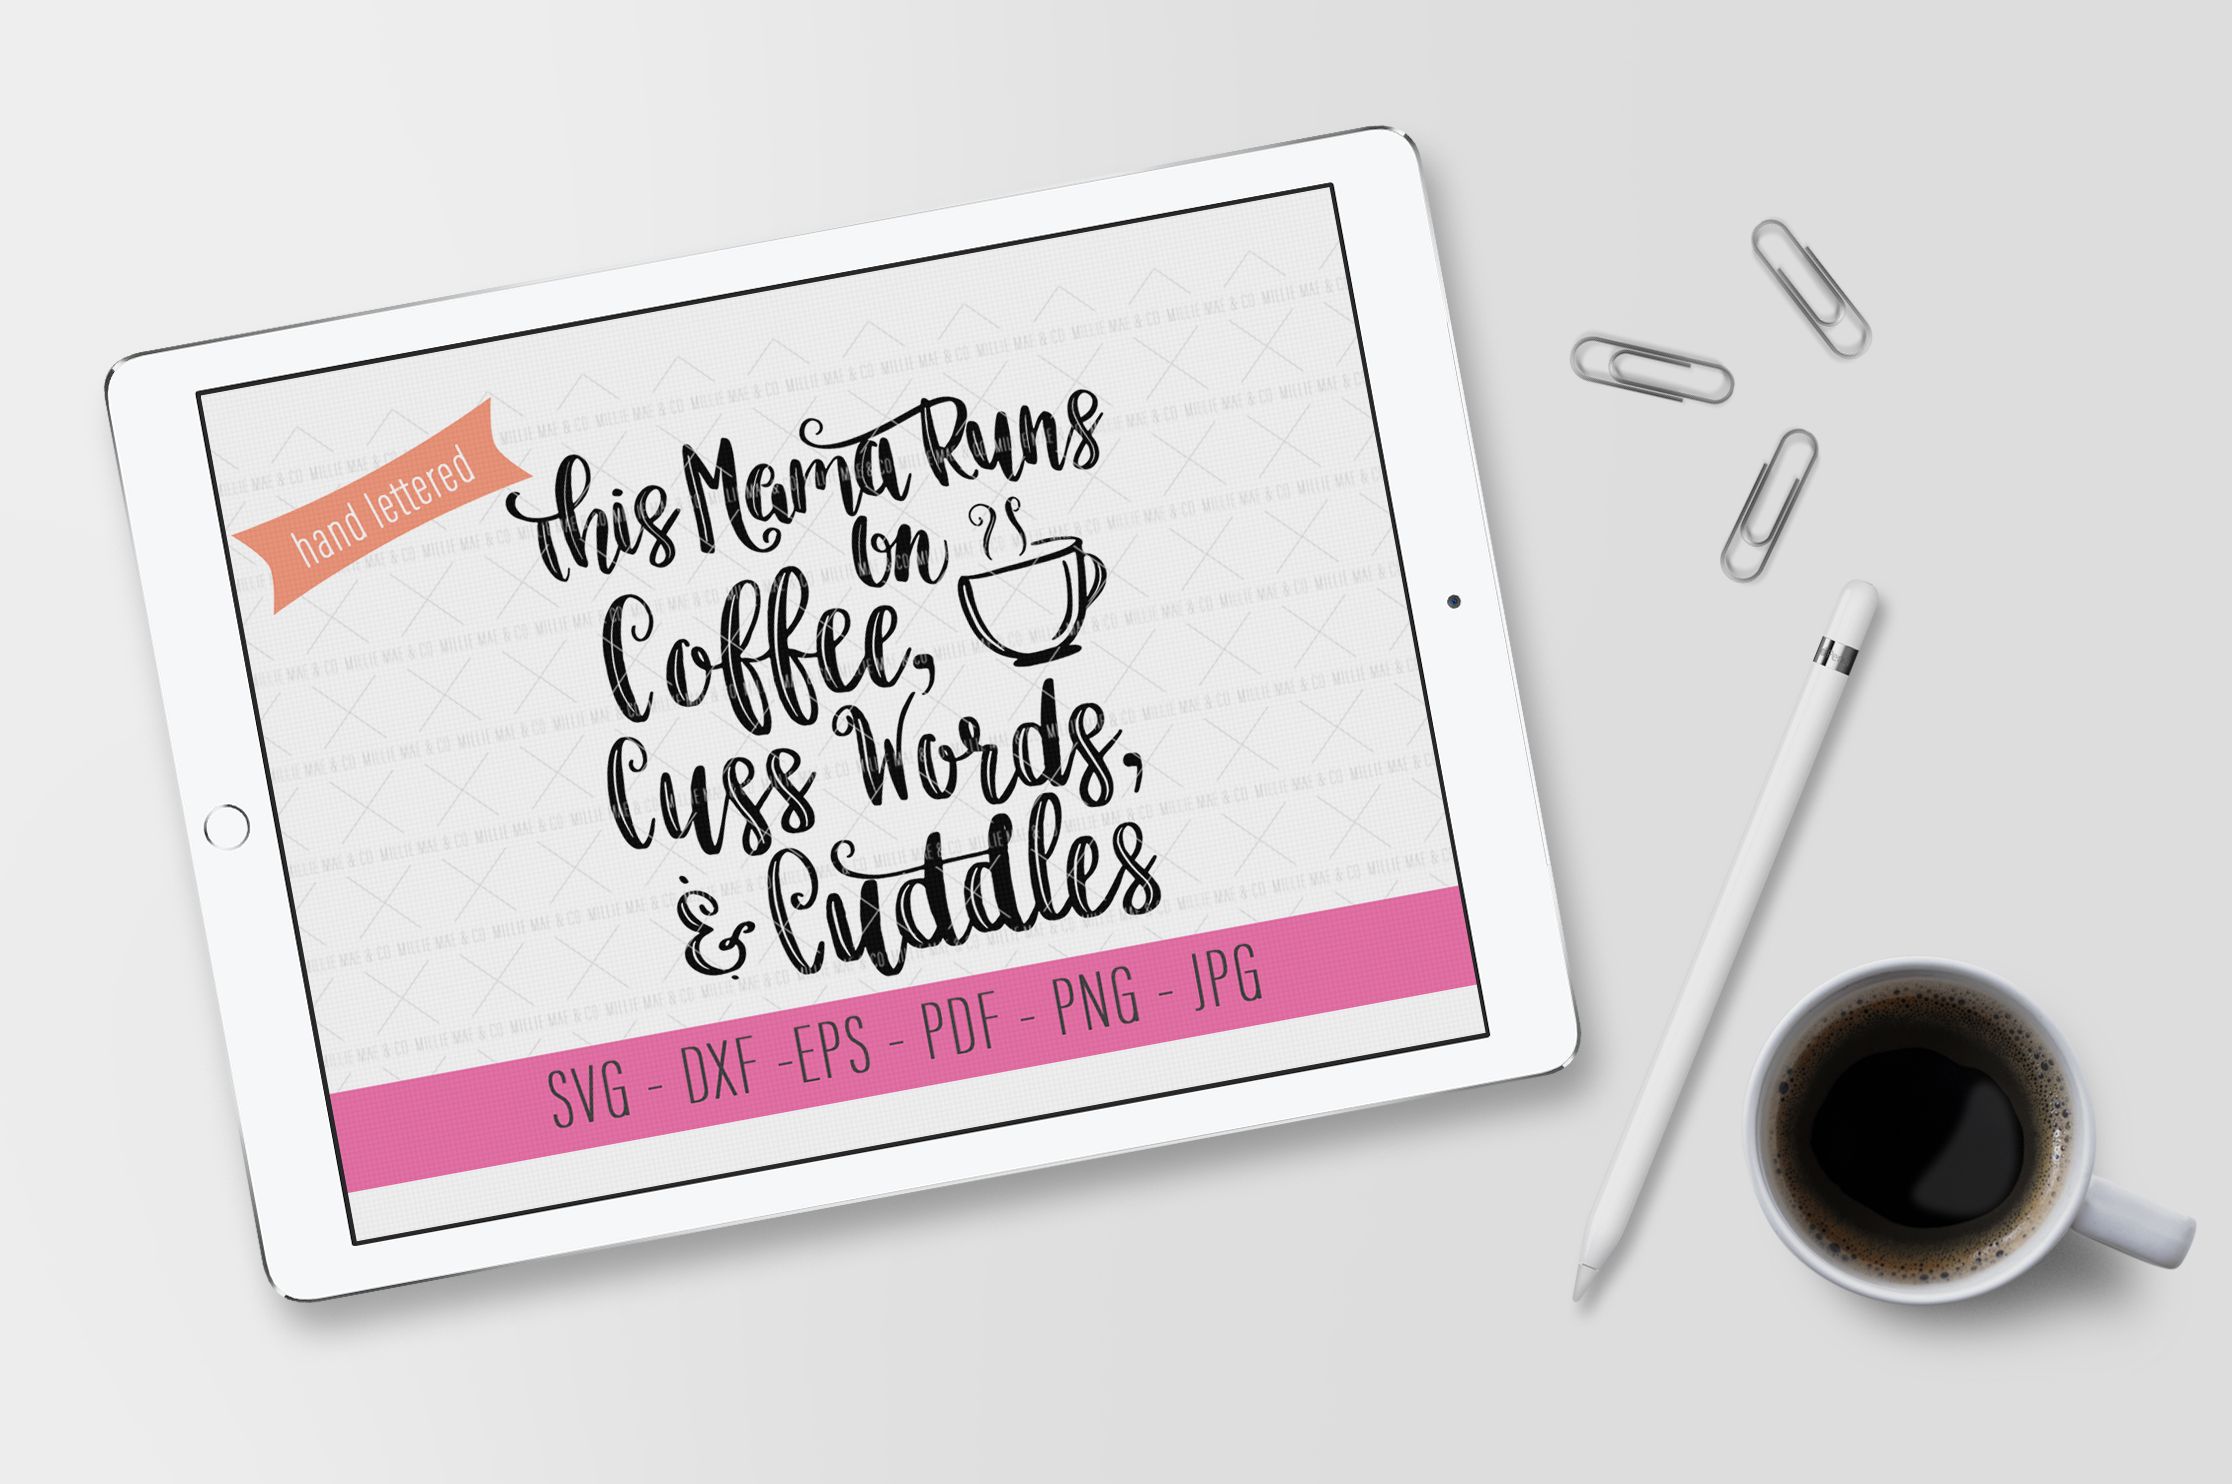 This Mama Runs On Coffee, Cuss Words, & Cuddles - SVG File example image 2